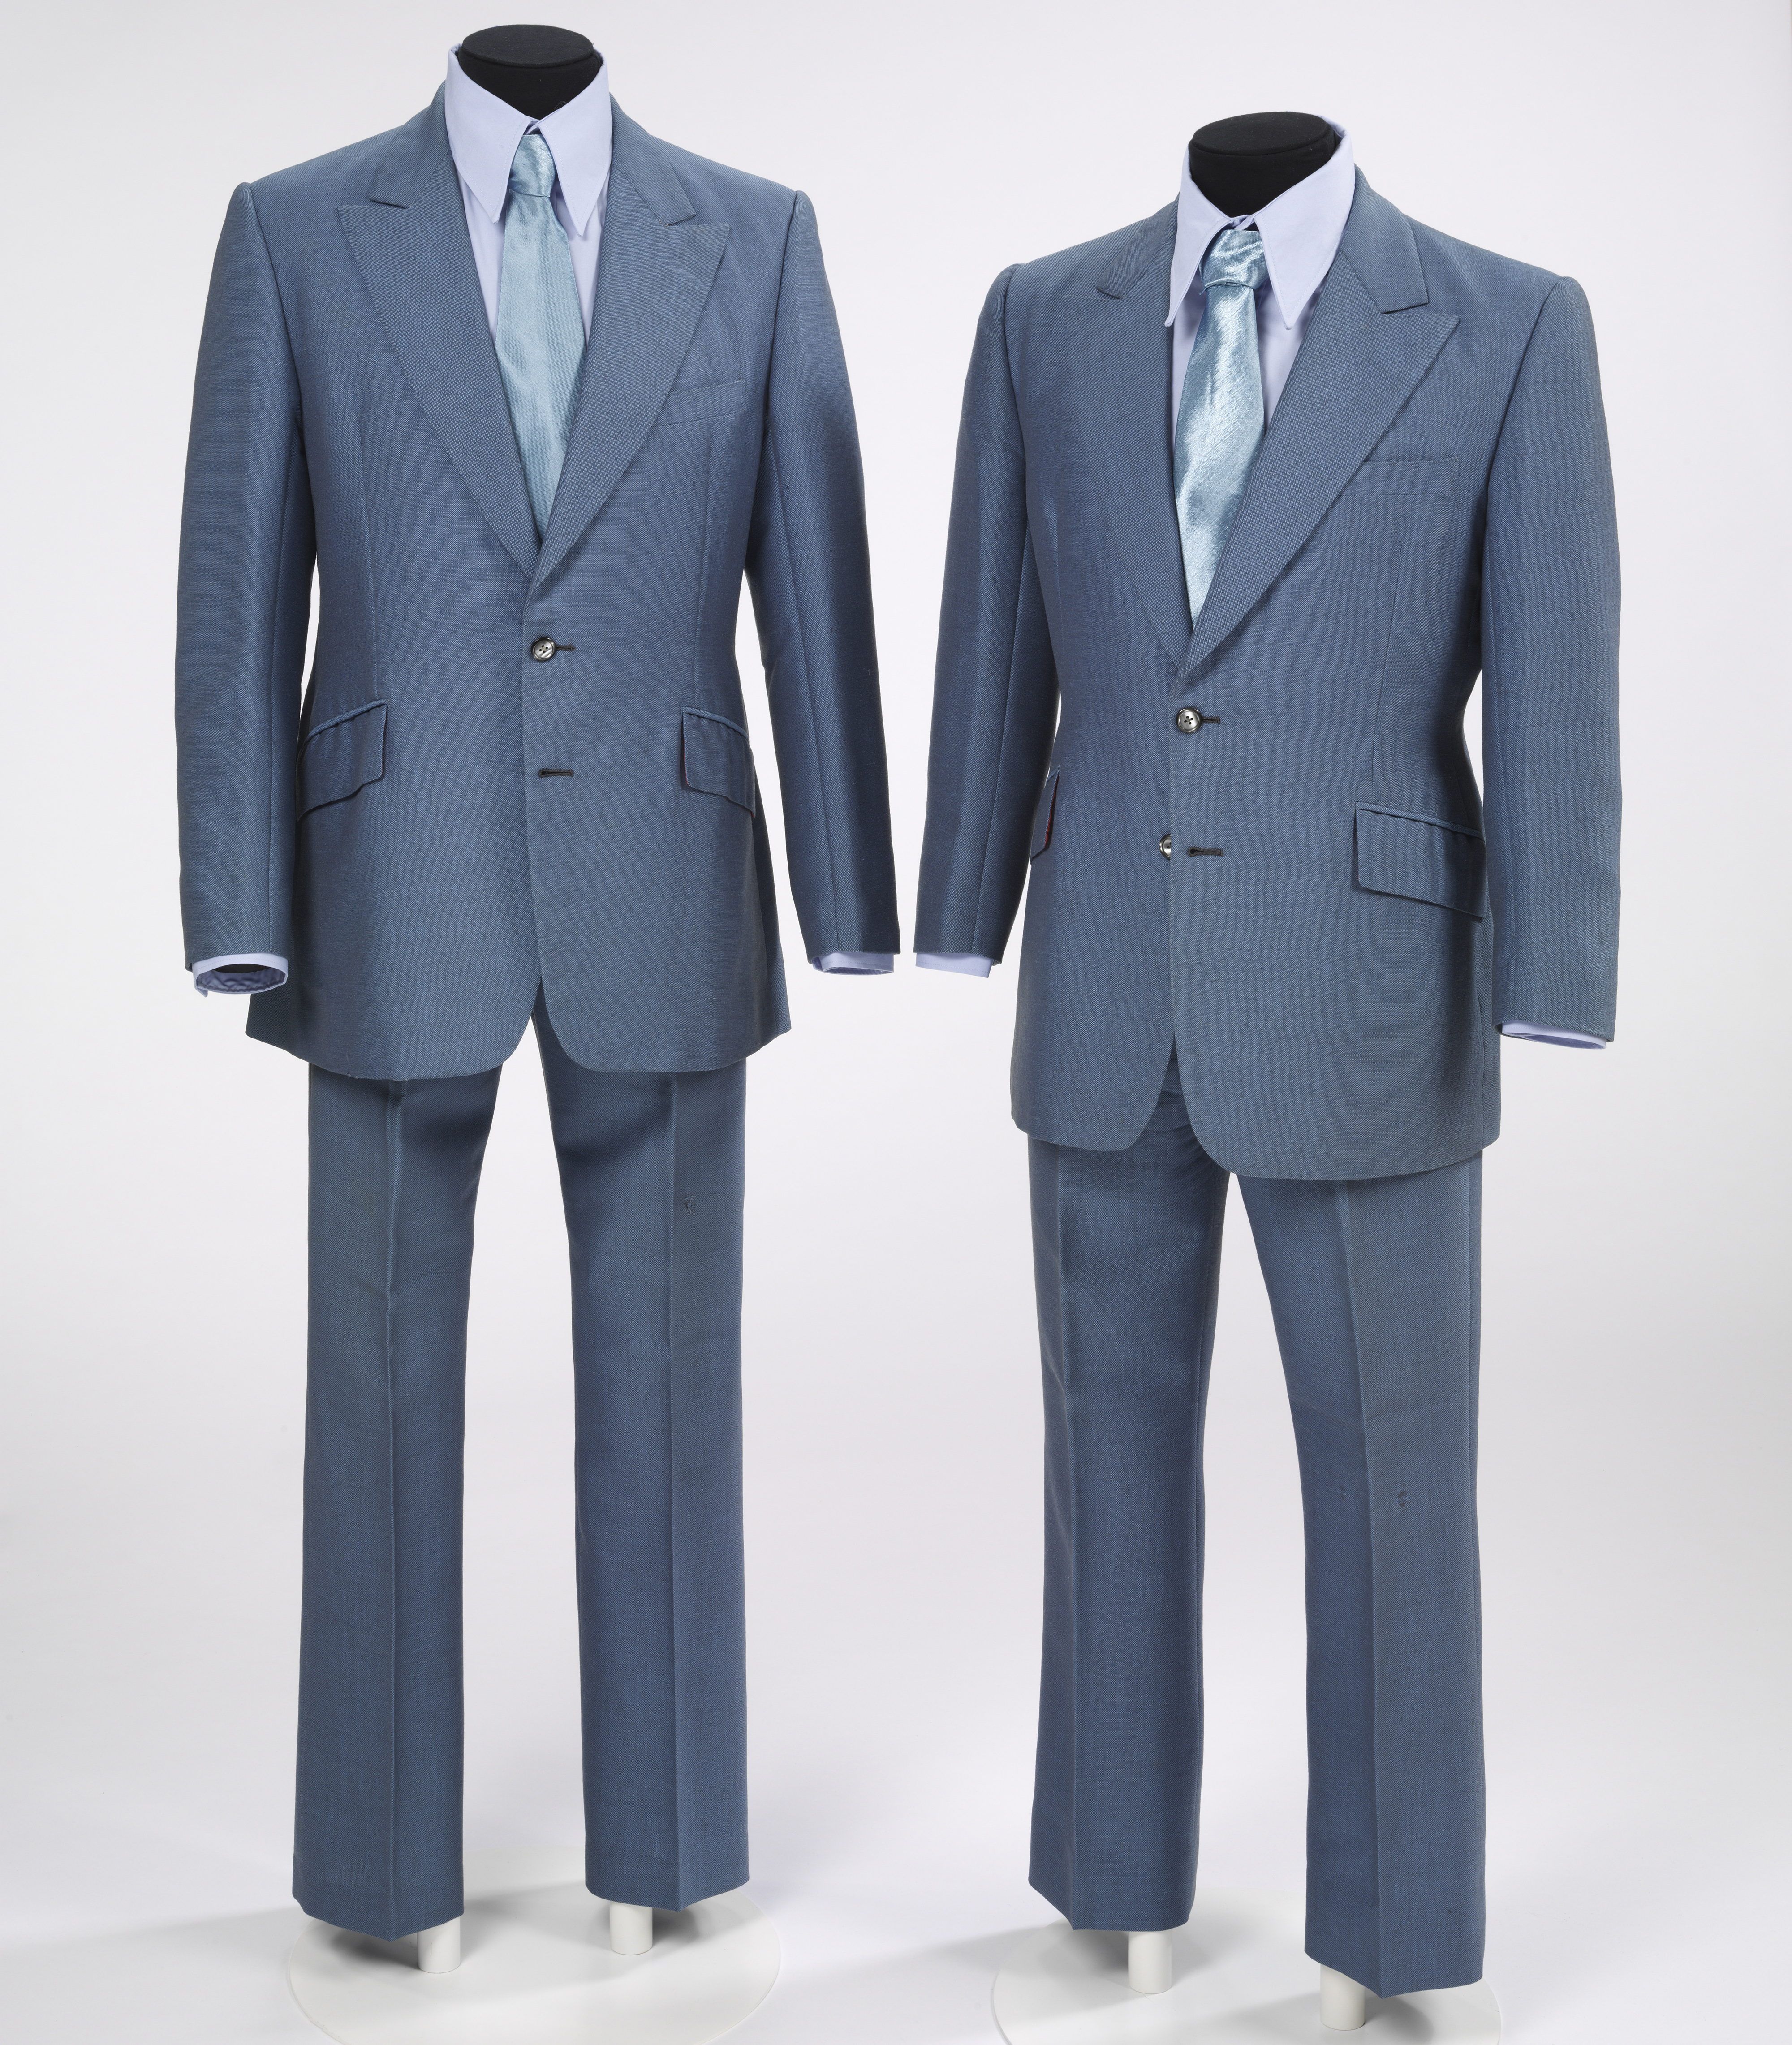 Morecambe and Wise's suits